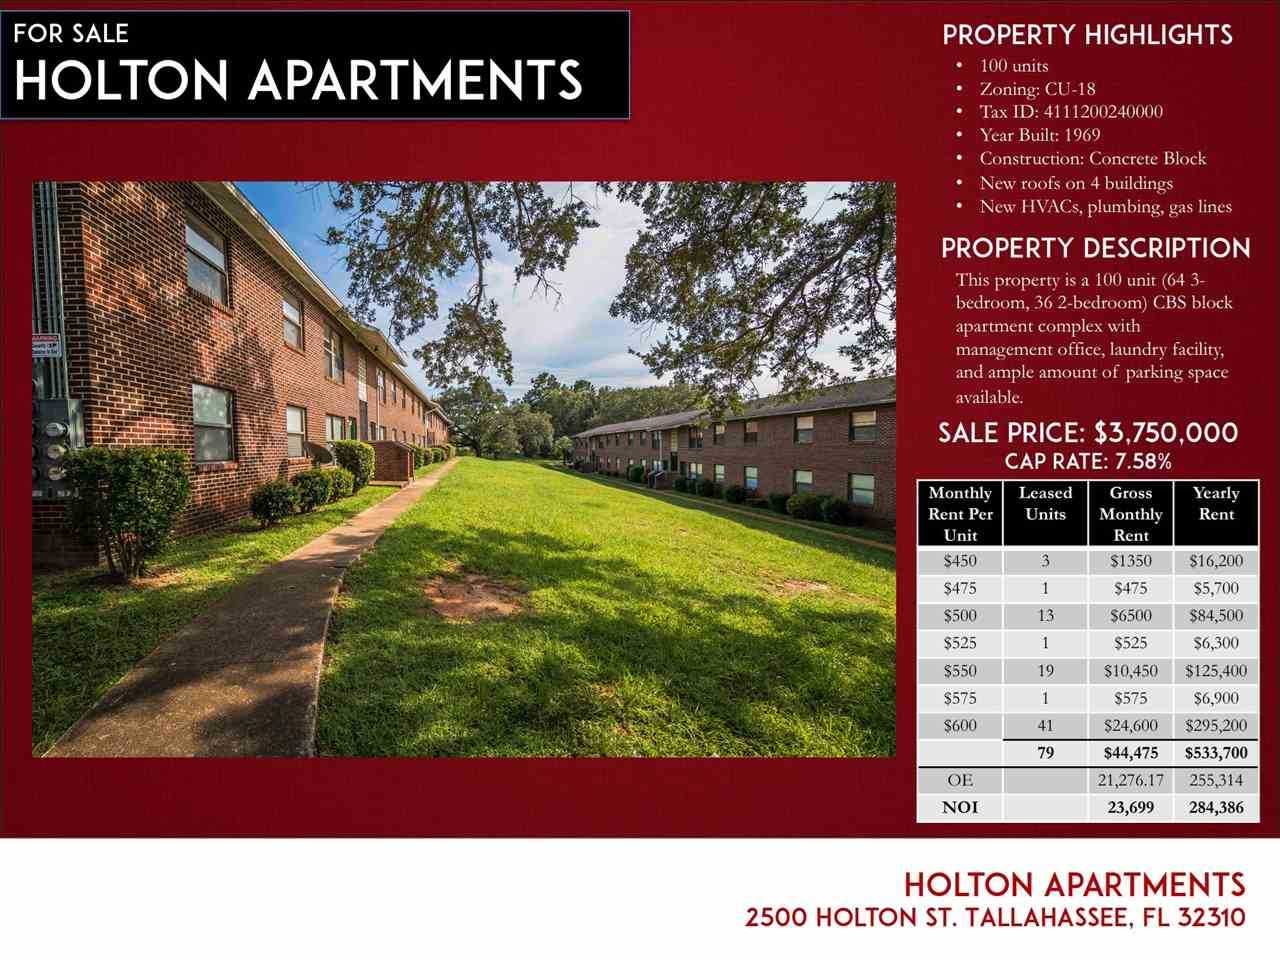 2500 Holton St Tallahassee, FL 32310 in Stoutamire Photo 1